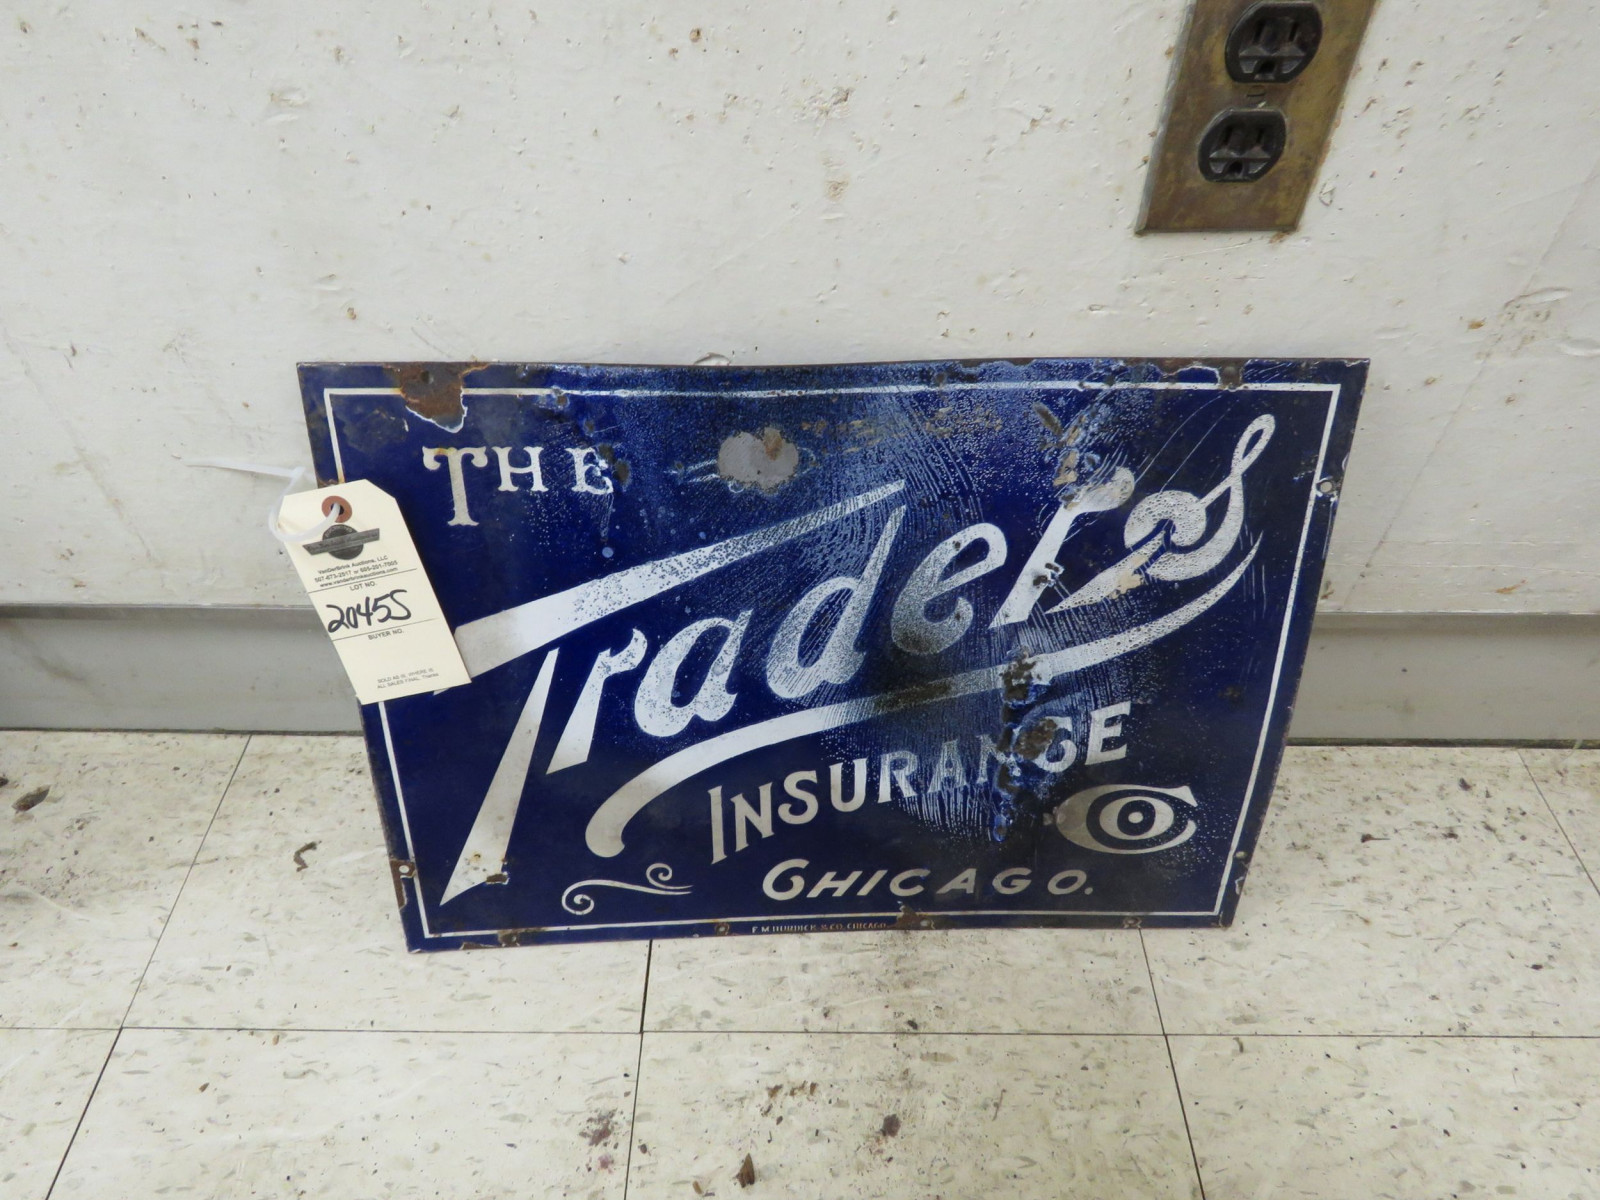 Traders Insurance Porcelain Sign - Image 1